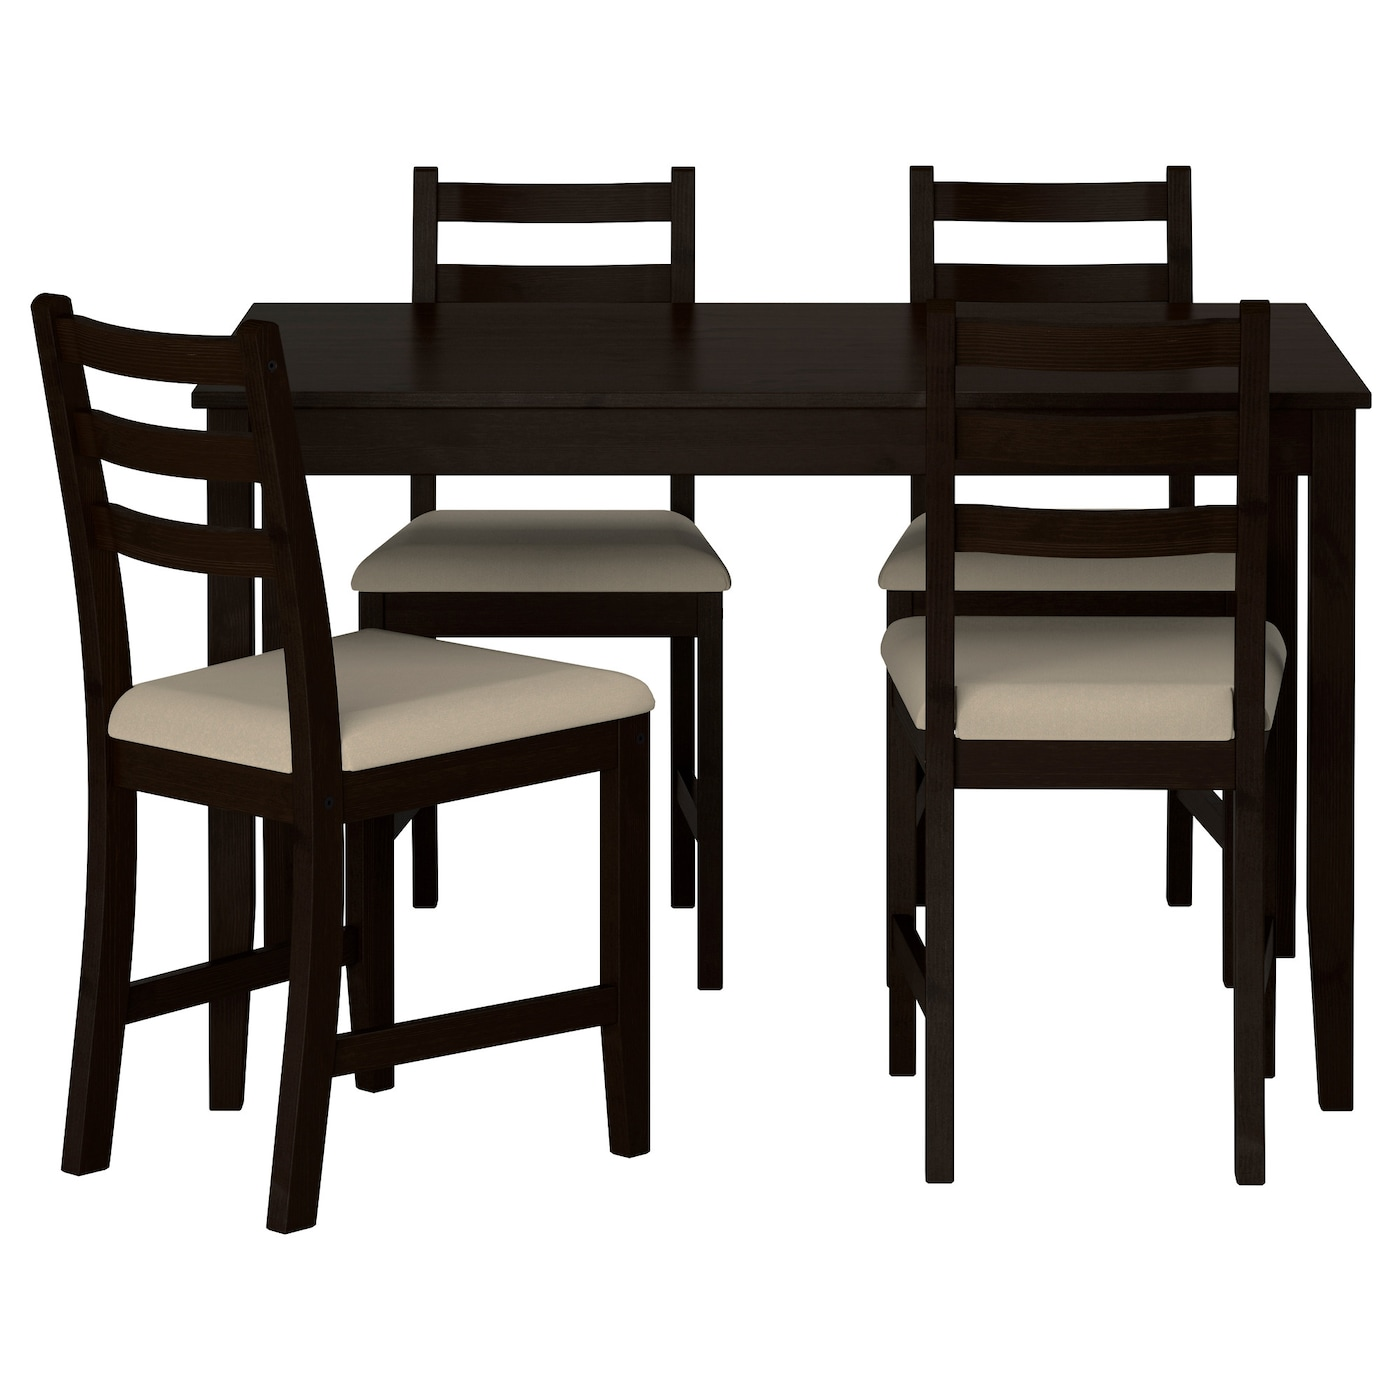 ikea lerhamn table and 4 chairs - Dining Room Set Ikea